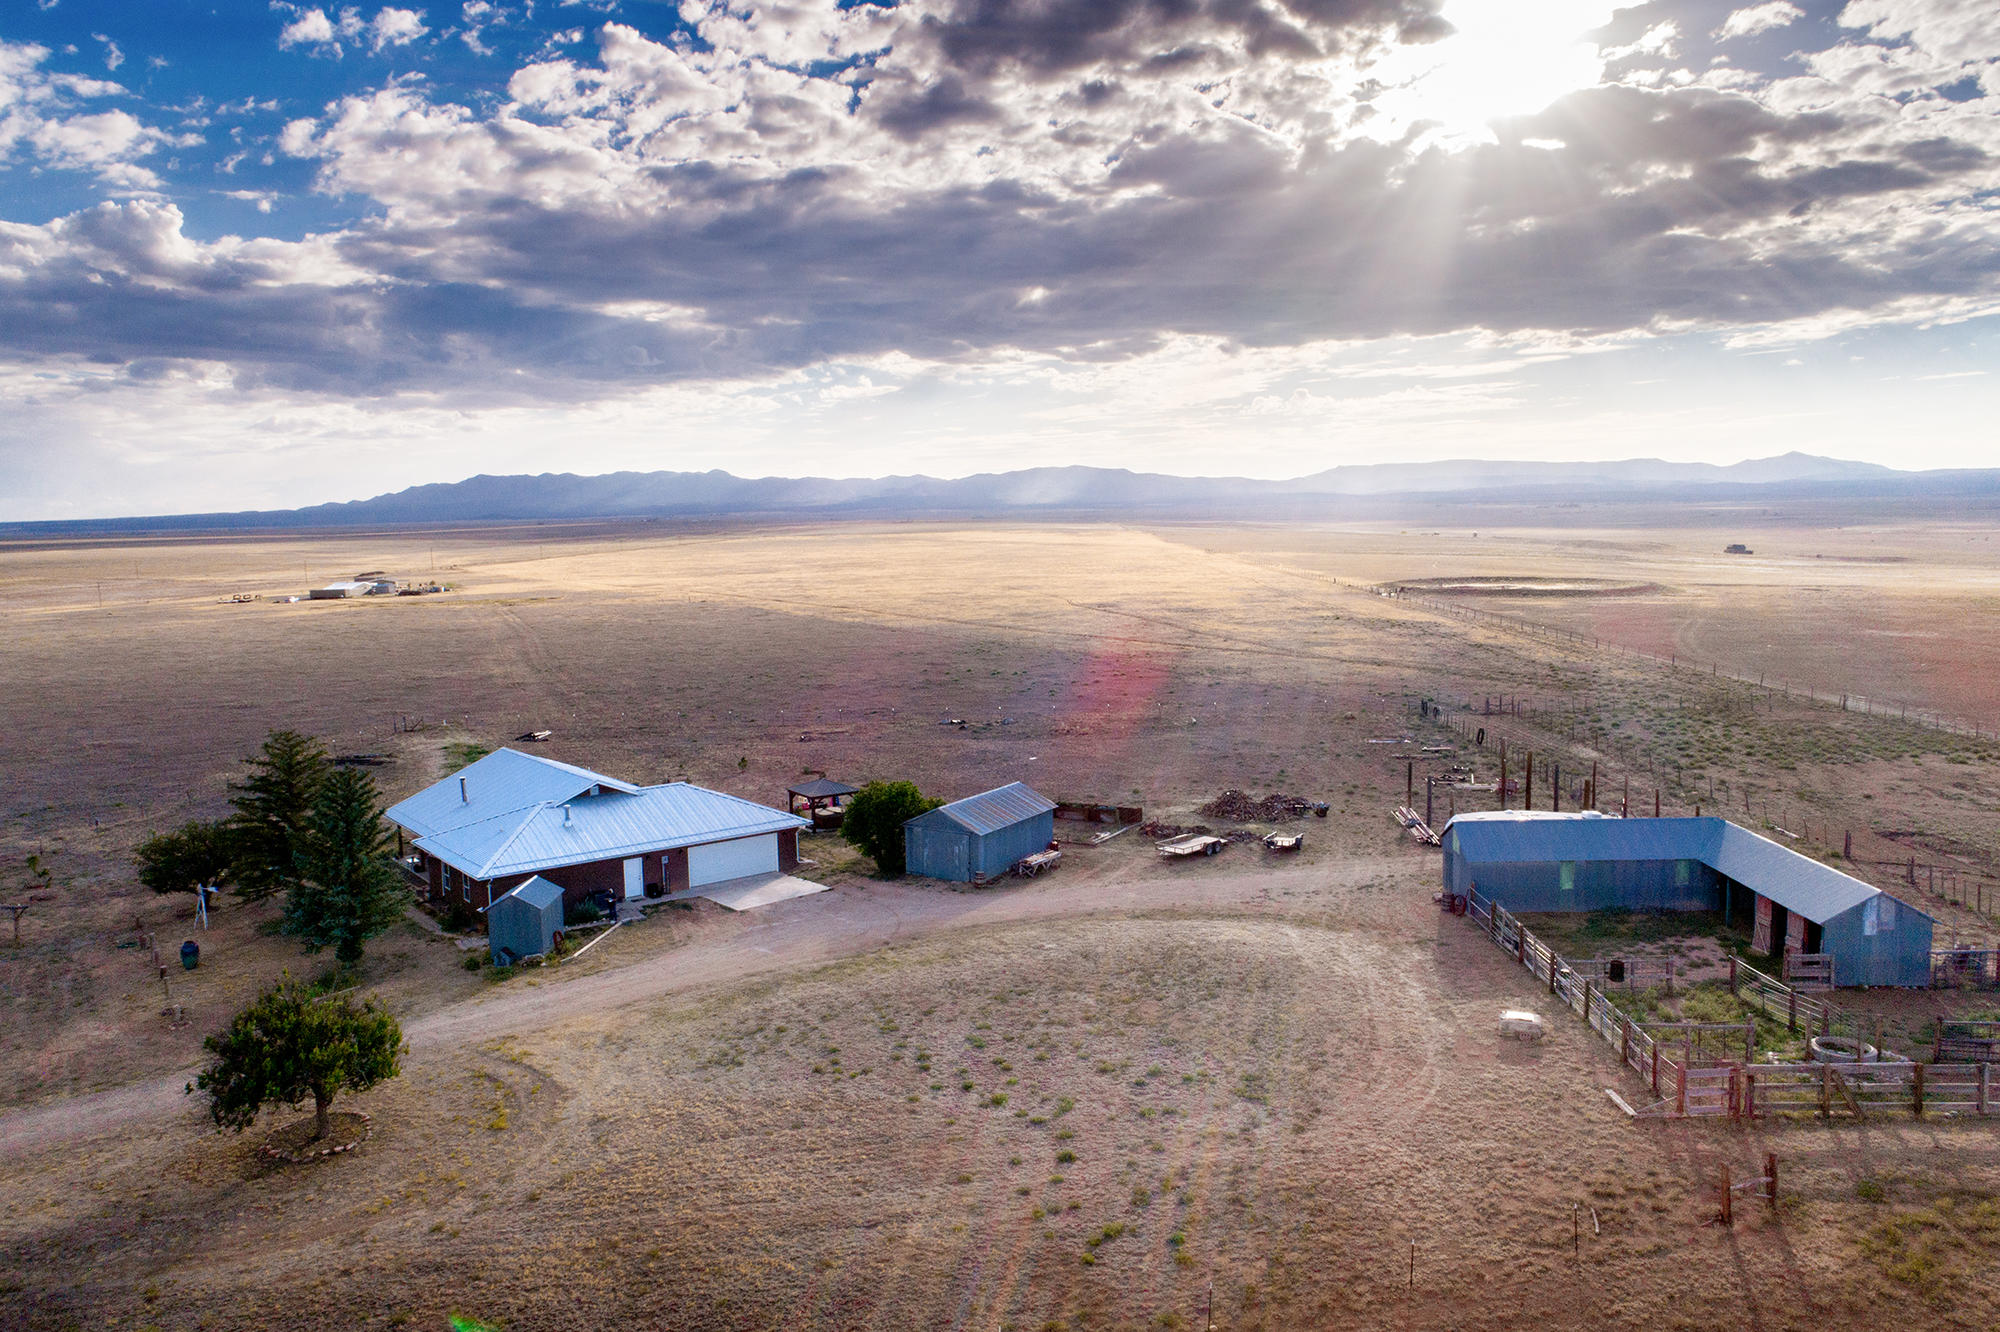 Beautiful custom ranch house in the  Estancia area on 39.49 Acres*Mtn  view with GORG sunrise & sunsets*Open flr plan to the kitch, grt rm, & BKFST area*High ceilings & lots of windows makes this home bright & cheerful*Entertainers delight kitchen, with new granite counter tops, natural gas stove, large walk-in pantry*Large granite conversation island*Abundant of maple cabinets & draws.Spacious great room for large groups.  Mst brm which is sep from the other bds, has large walk-in closet.  Mst BA with his & her sinks, garden tub & sep shower*Refrigerated air, radiant flr heating (duel heating options)*Tile throughout*Above ground well house*Hot tub*15.5x50 barn w/3 doors*Guest House (MFH) has sep dri west of prop grt 4 family member or..